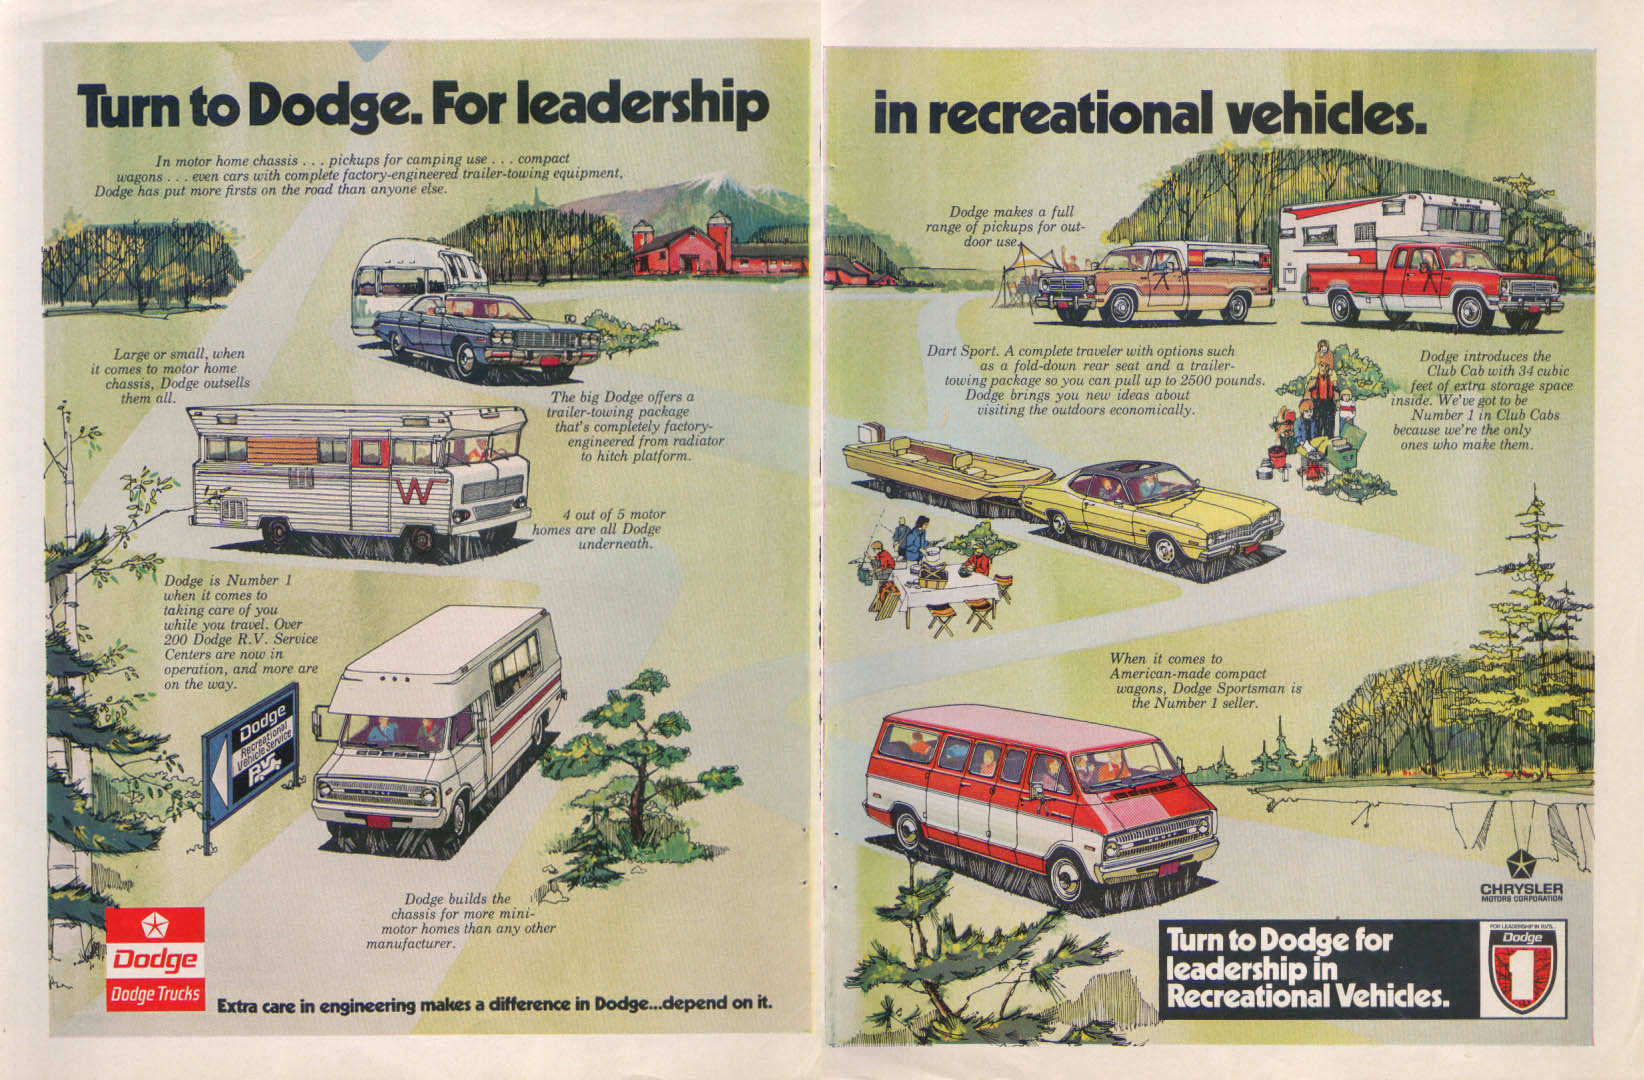 Image for Dodge leadership recreational vehicle Sportsman ad 1973